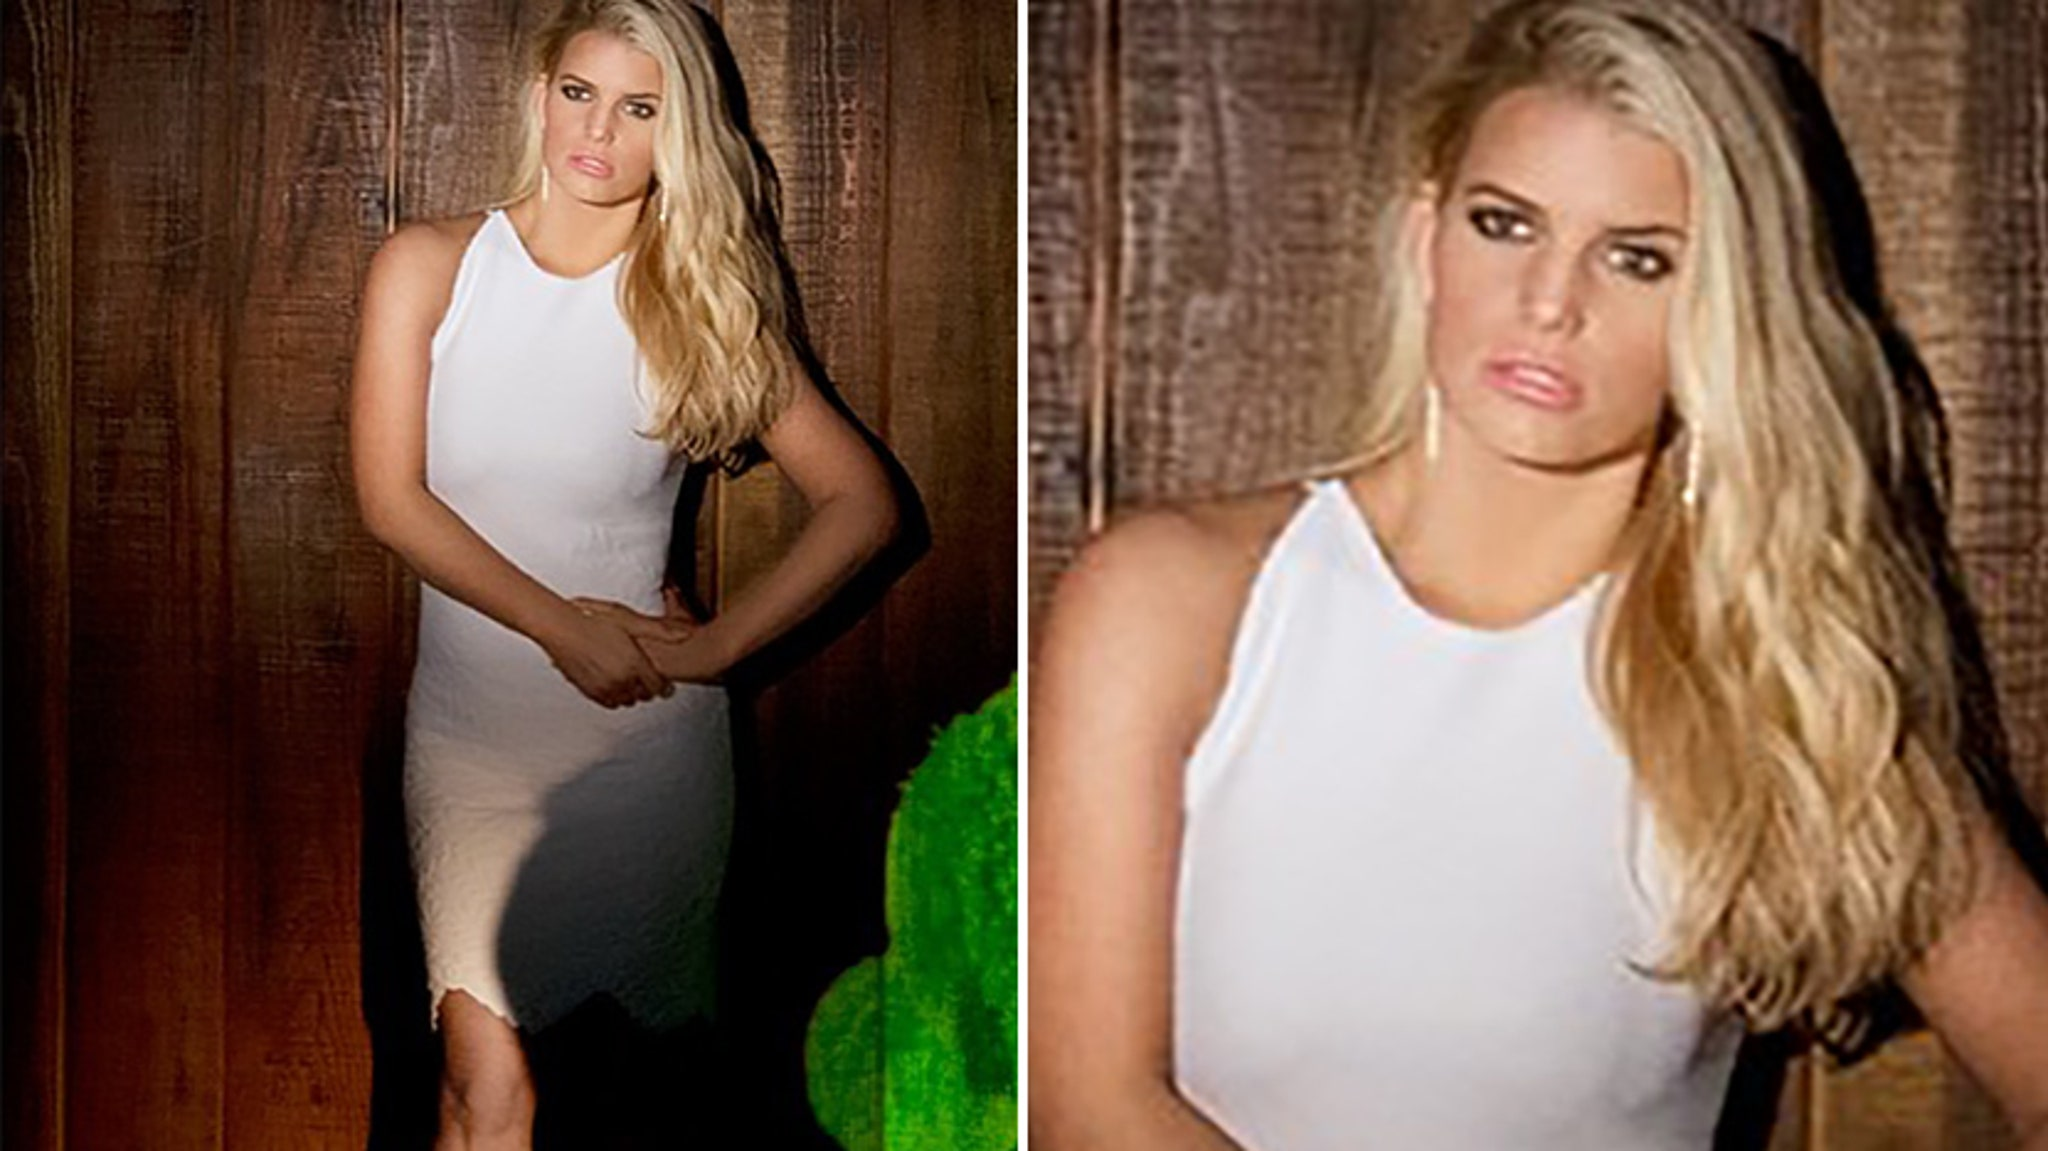 PHOTOS Jessica Simpson at goal weight in Weight Watchers ad